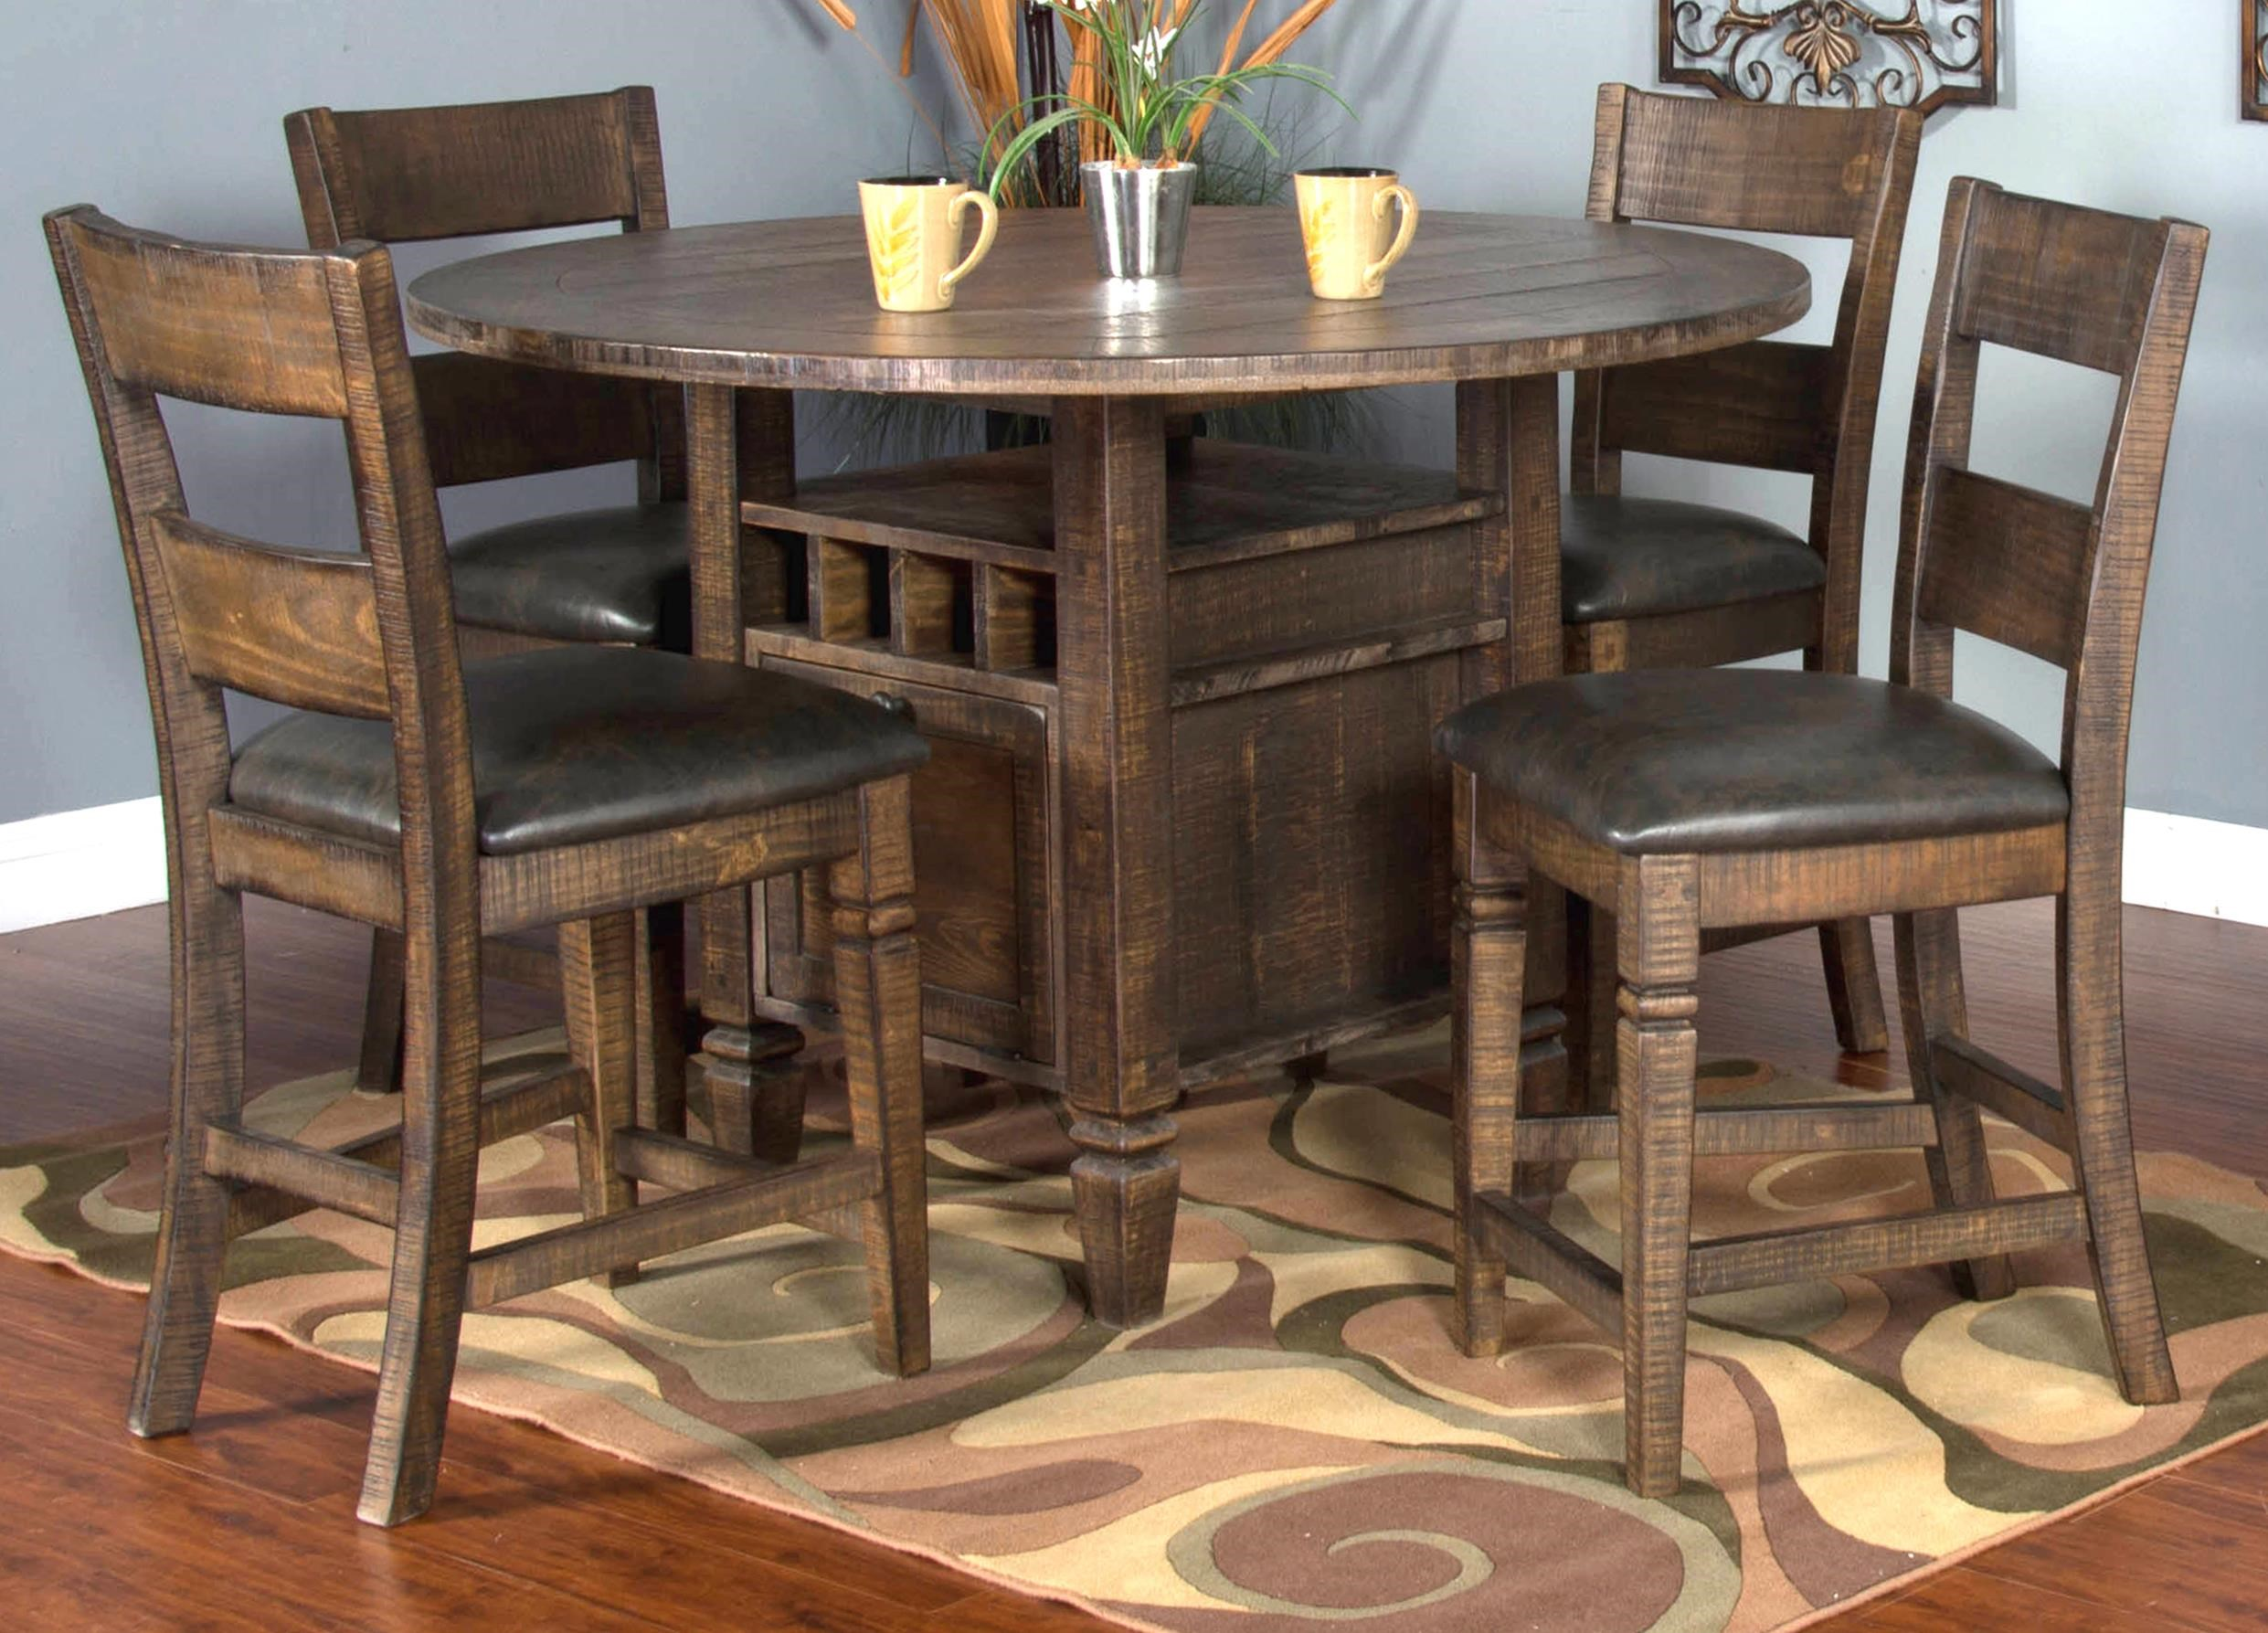 Morris Home Furnishings Thatcher Thatcher 5-Piece Dining Set - Item Number: 388802943